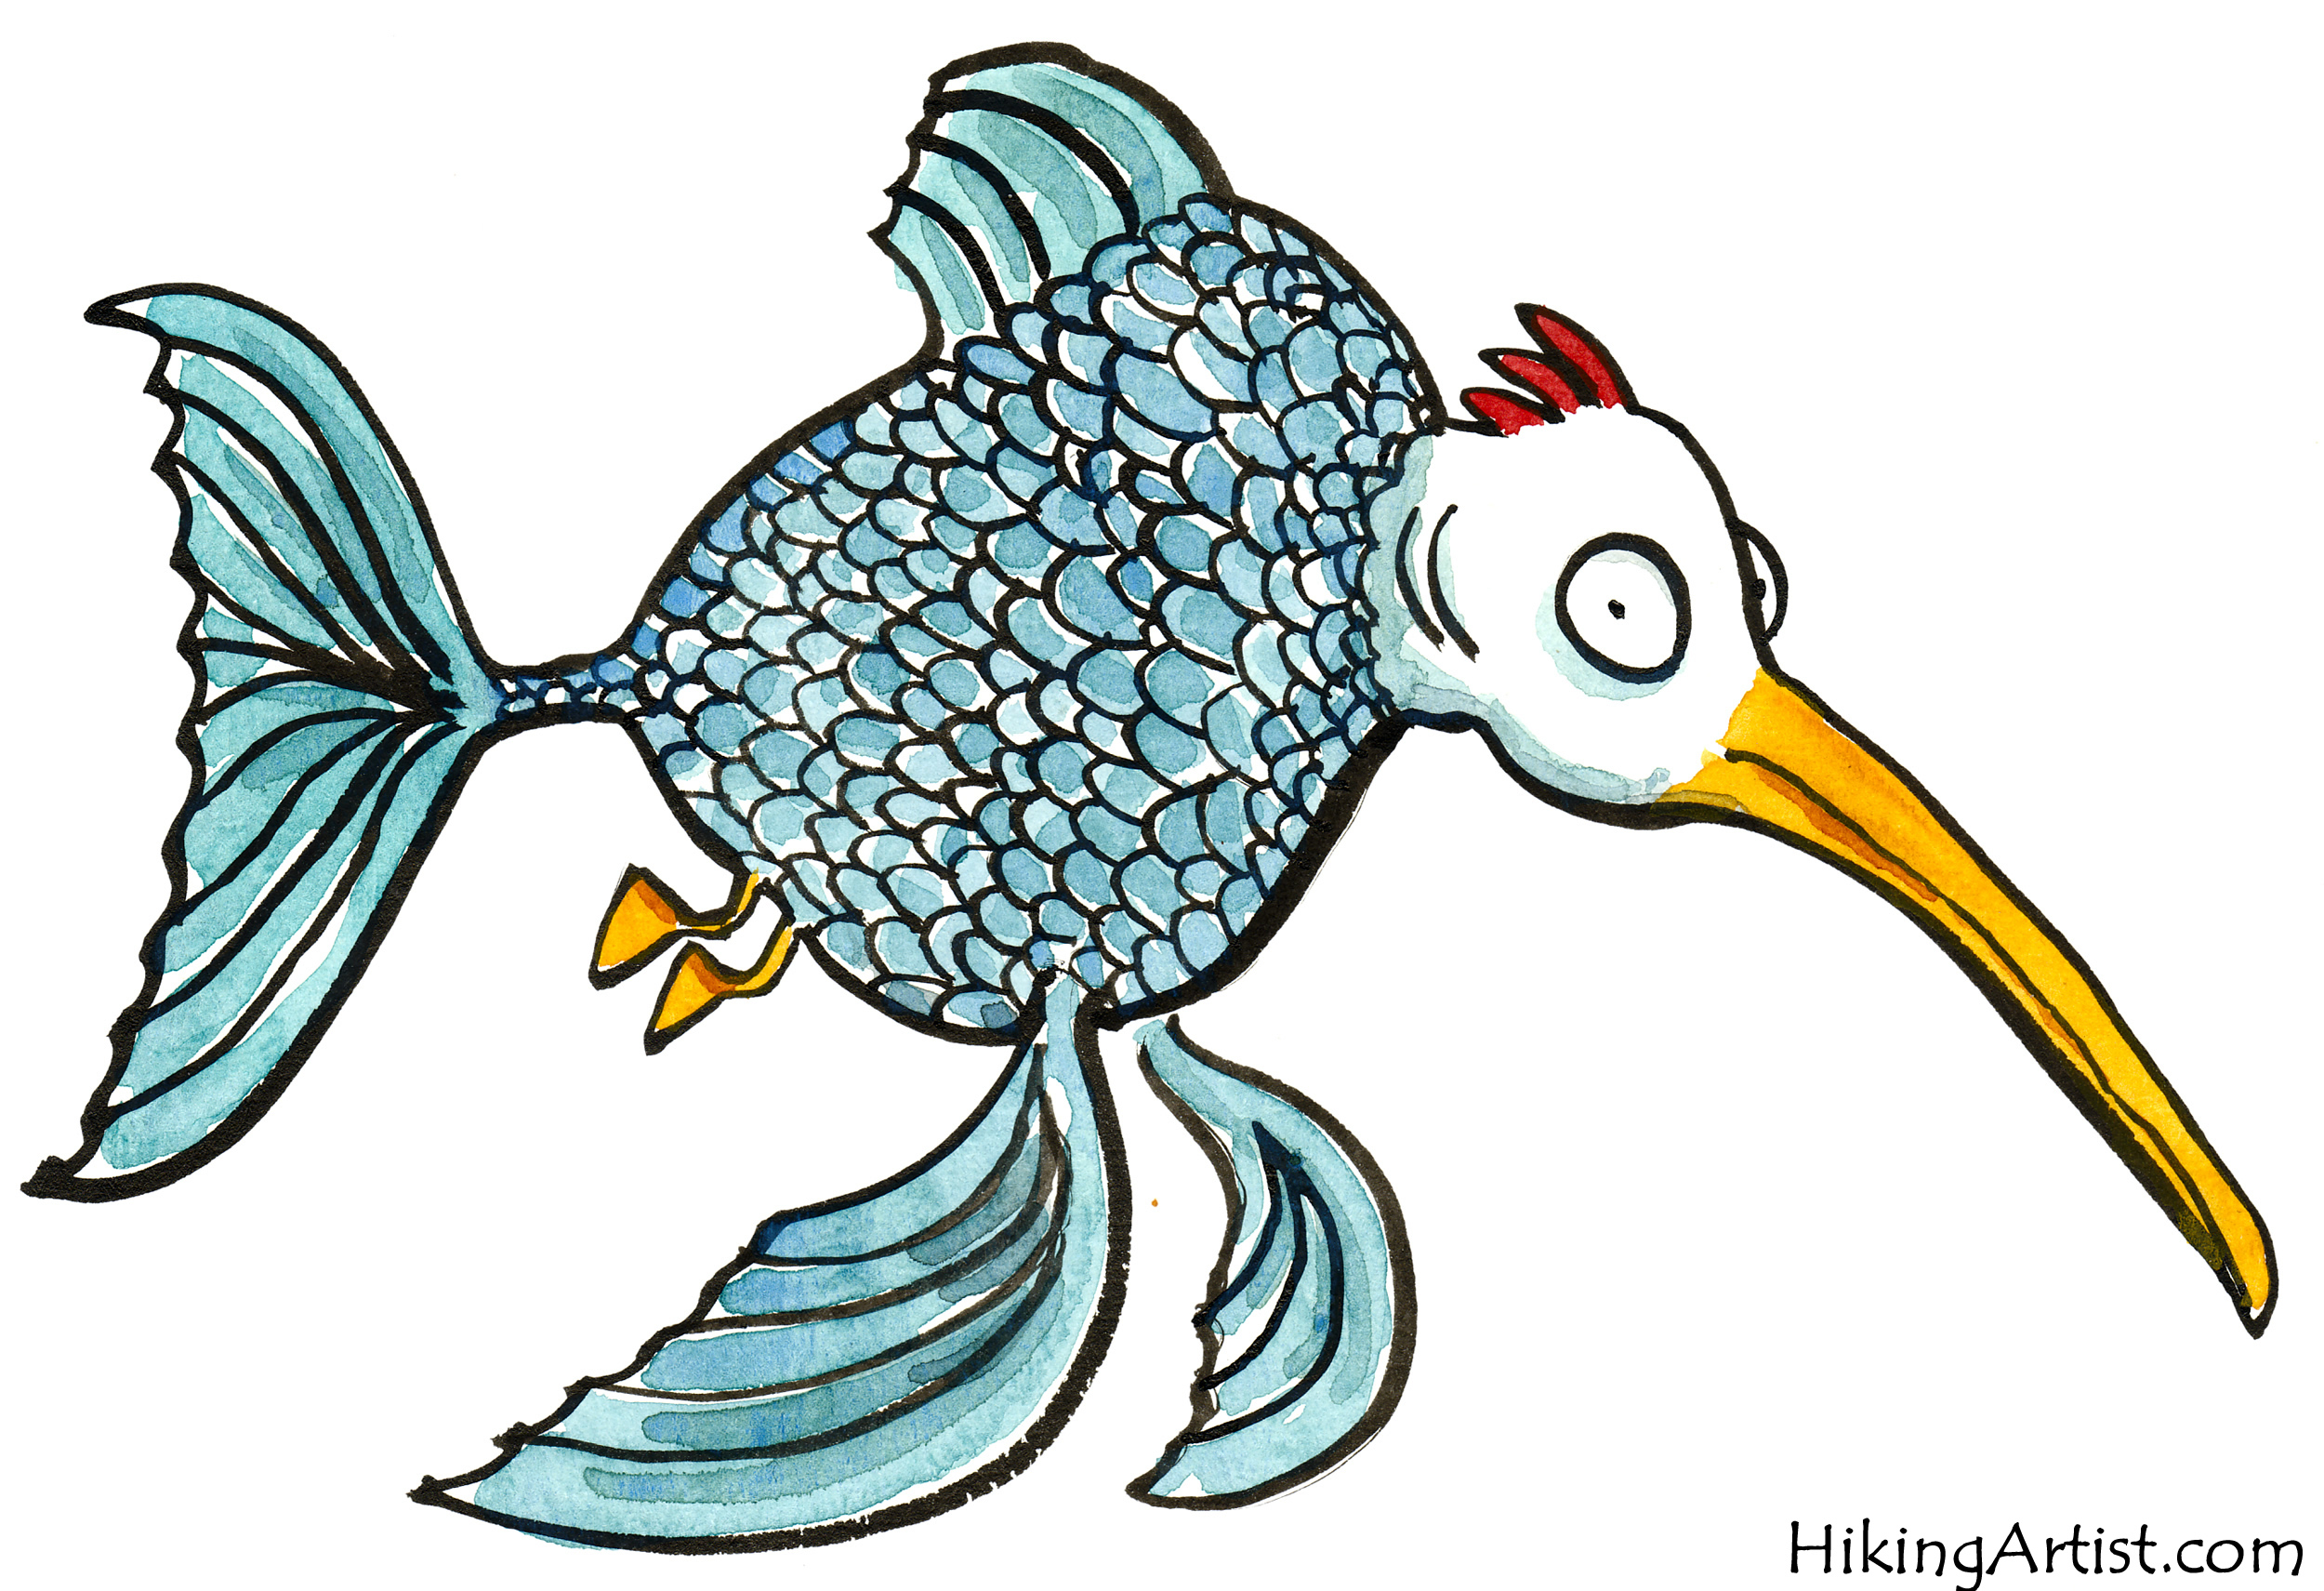 2500x1711 A few free Fish cartoon drawings The Hiking Artist project by